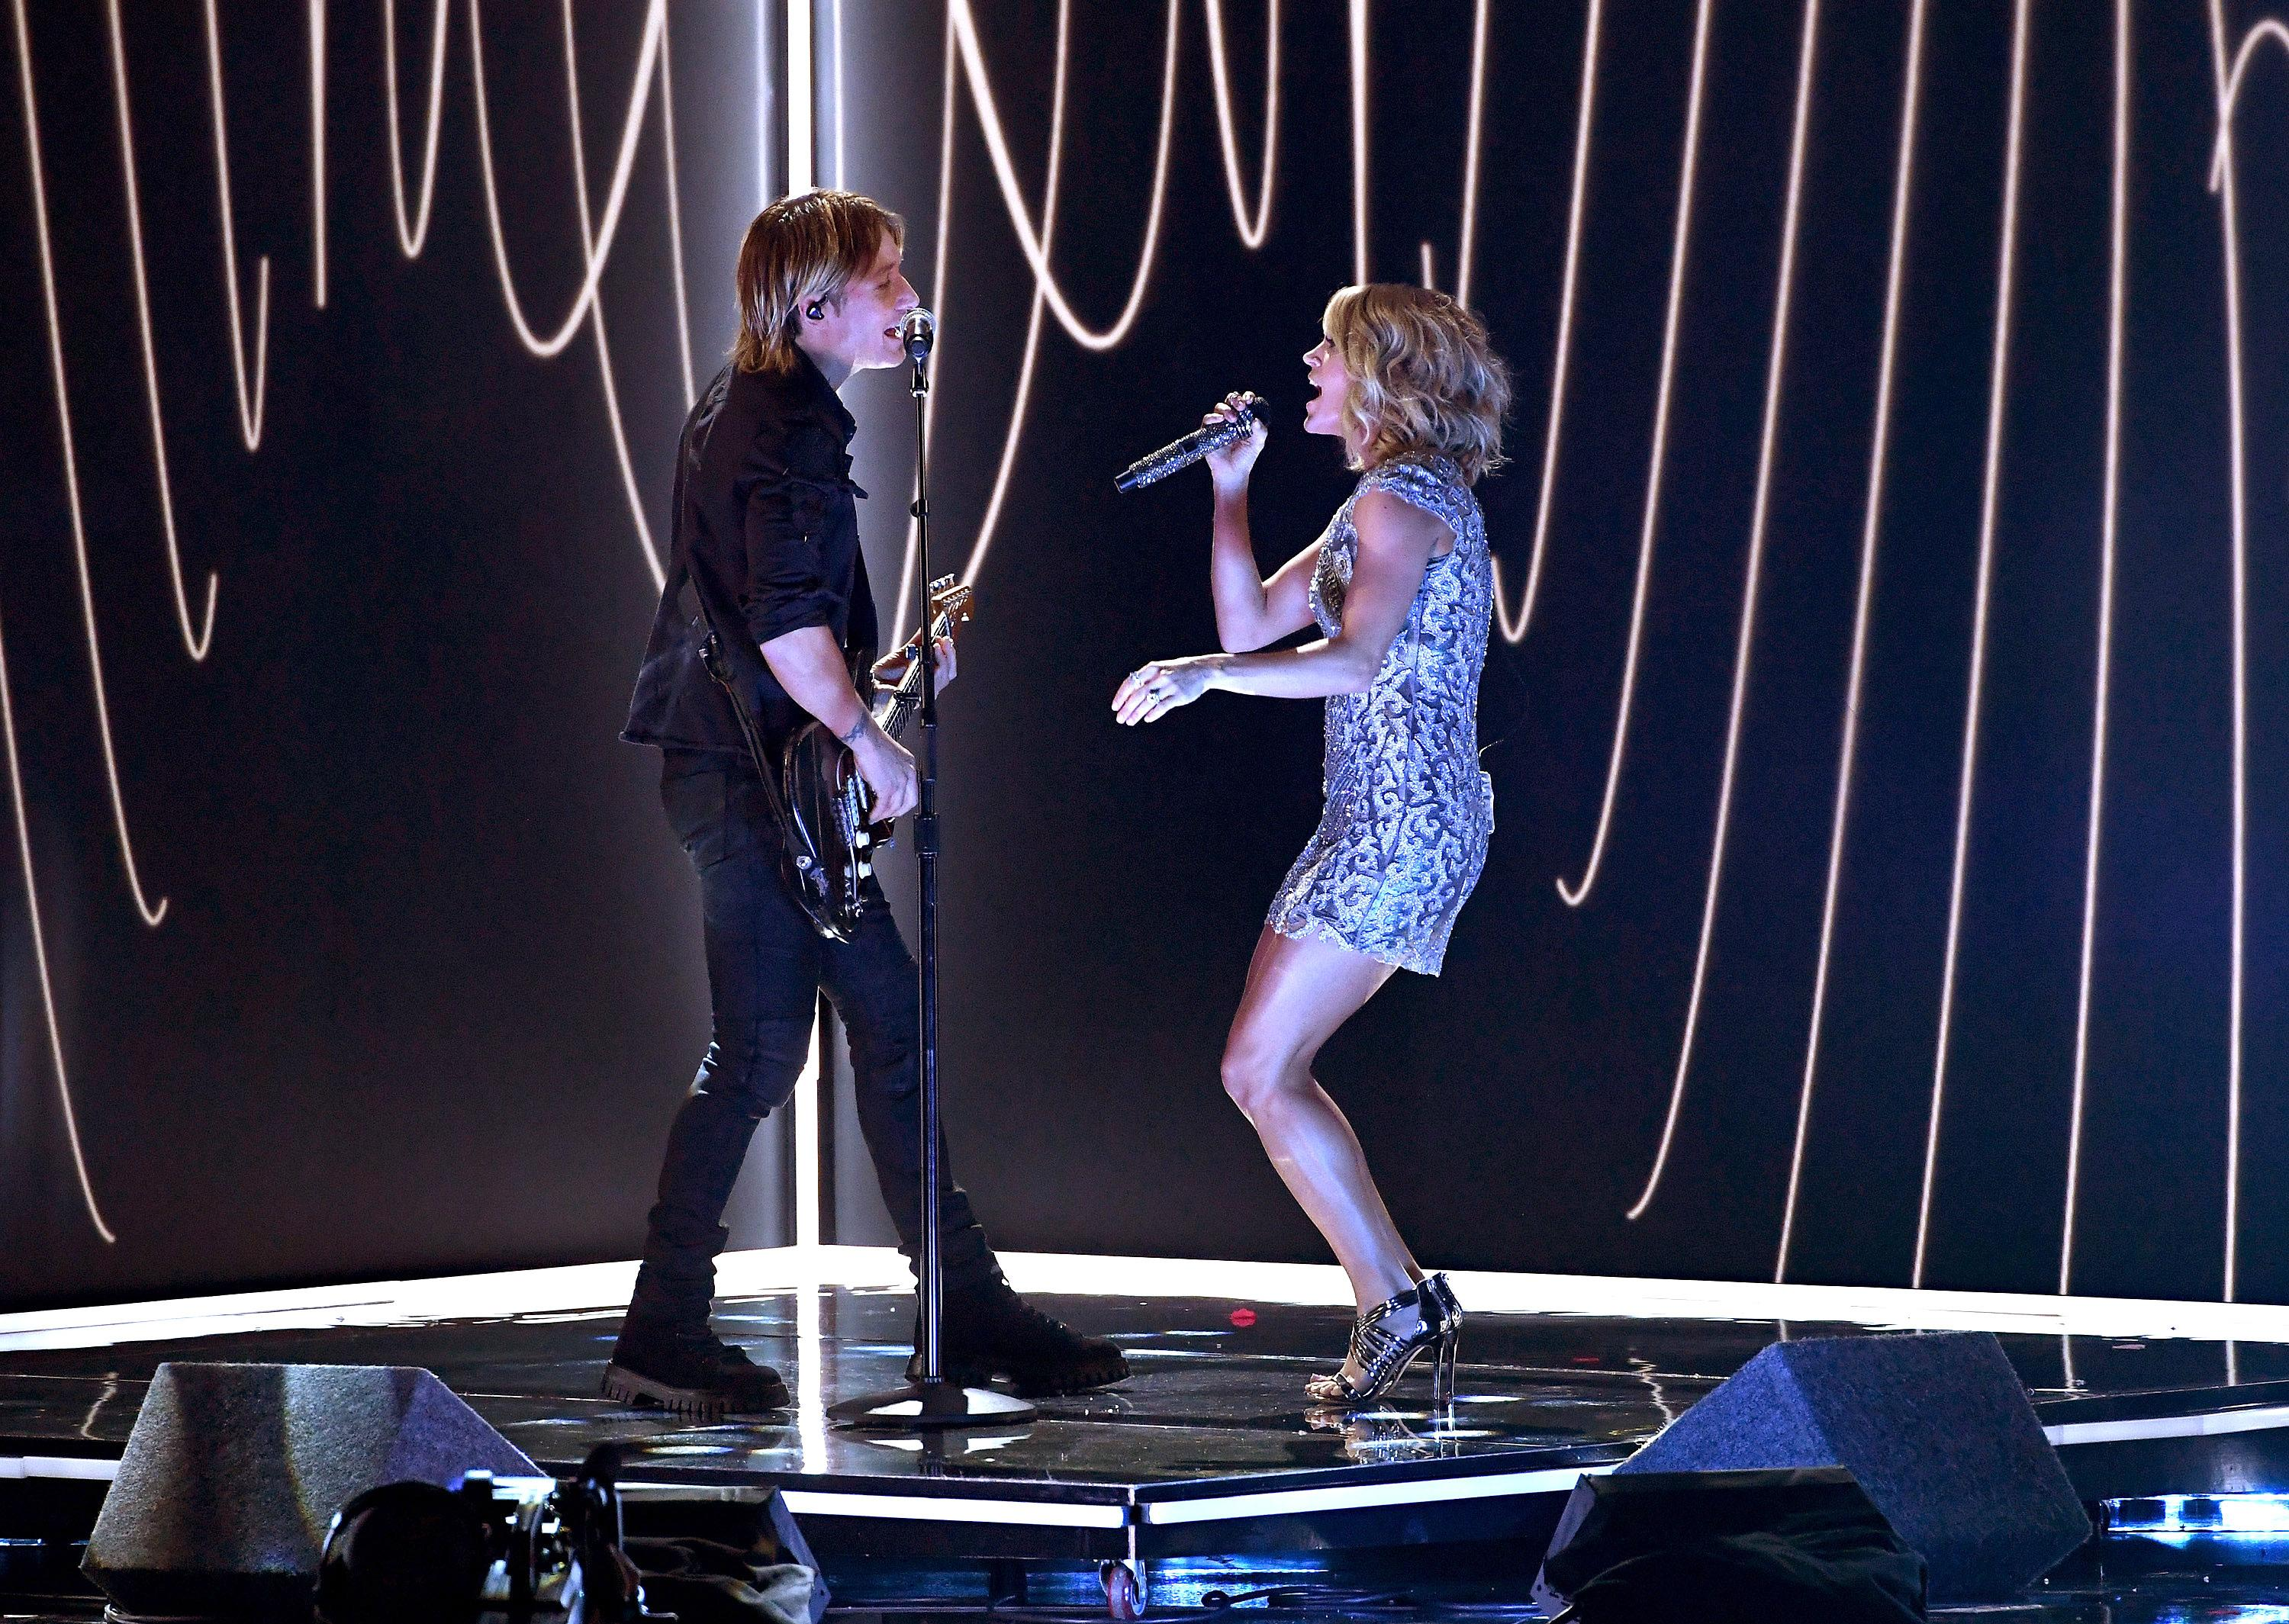 Keith urban and carrie underwood team up for a trippy for Carrie underwood and keith urban duet